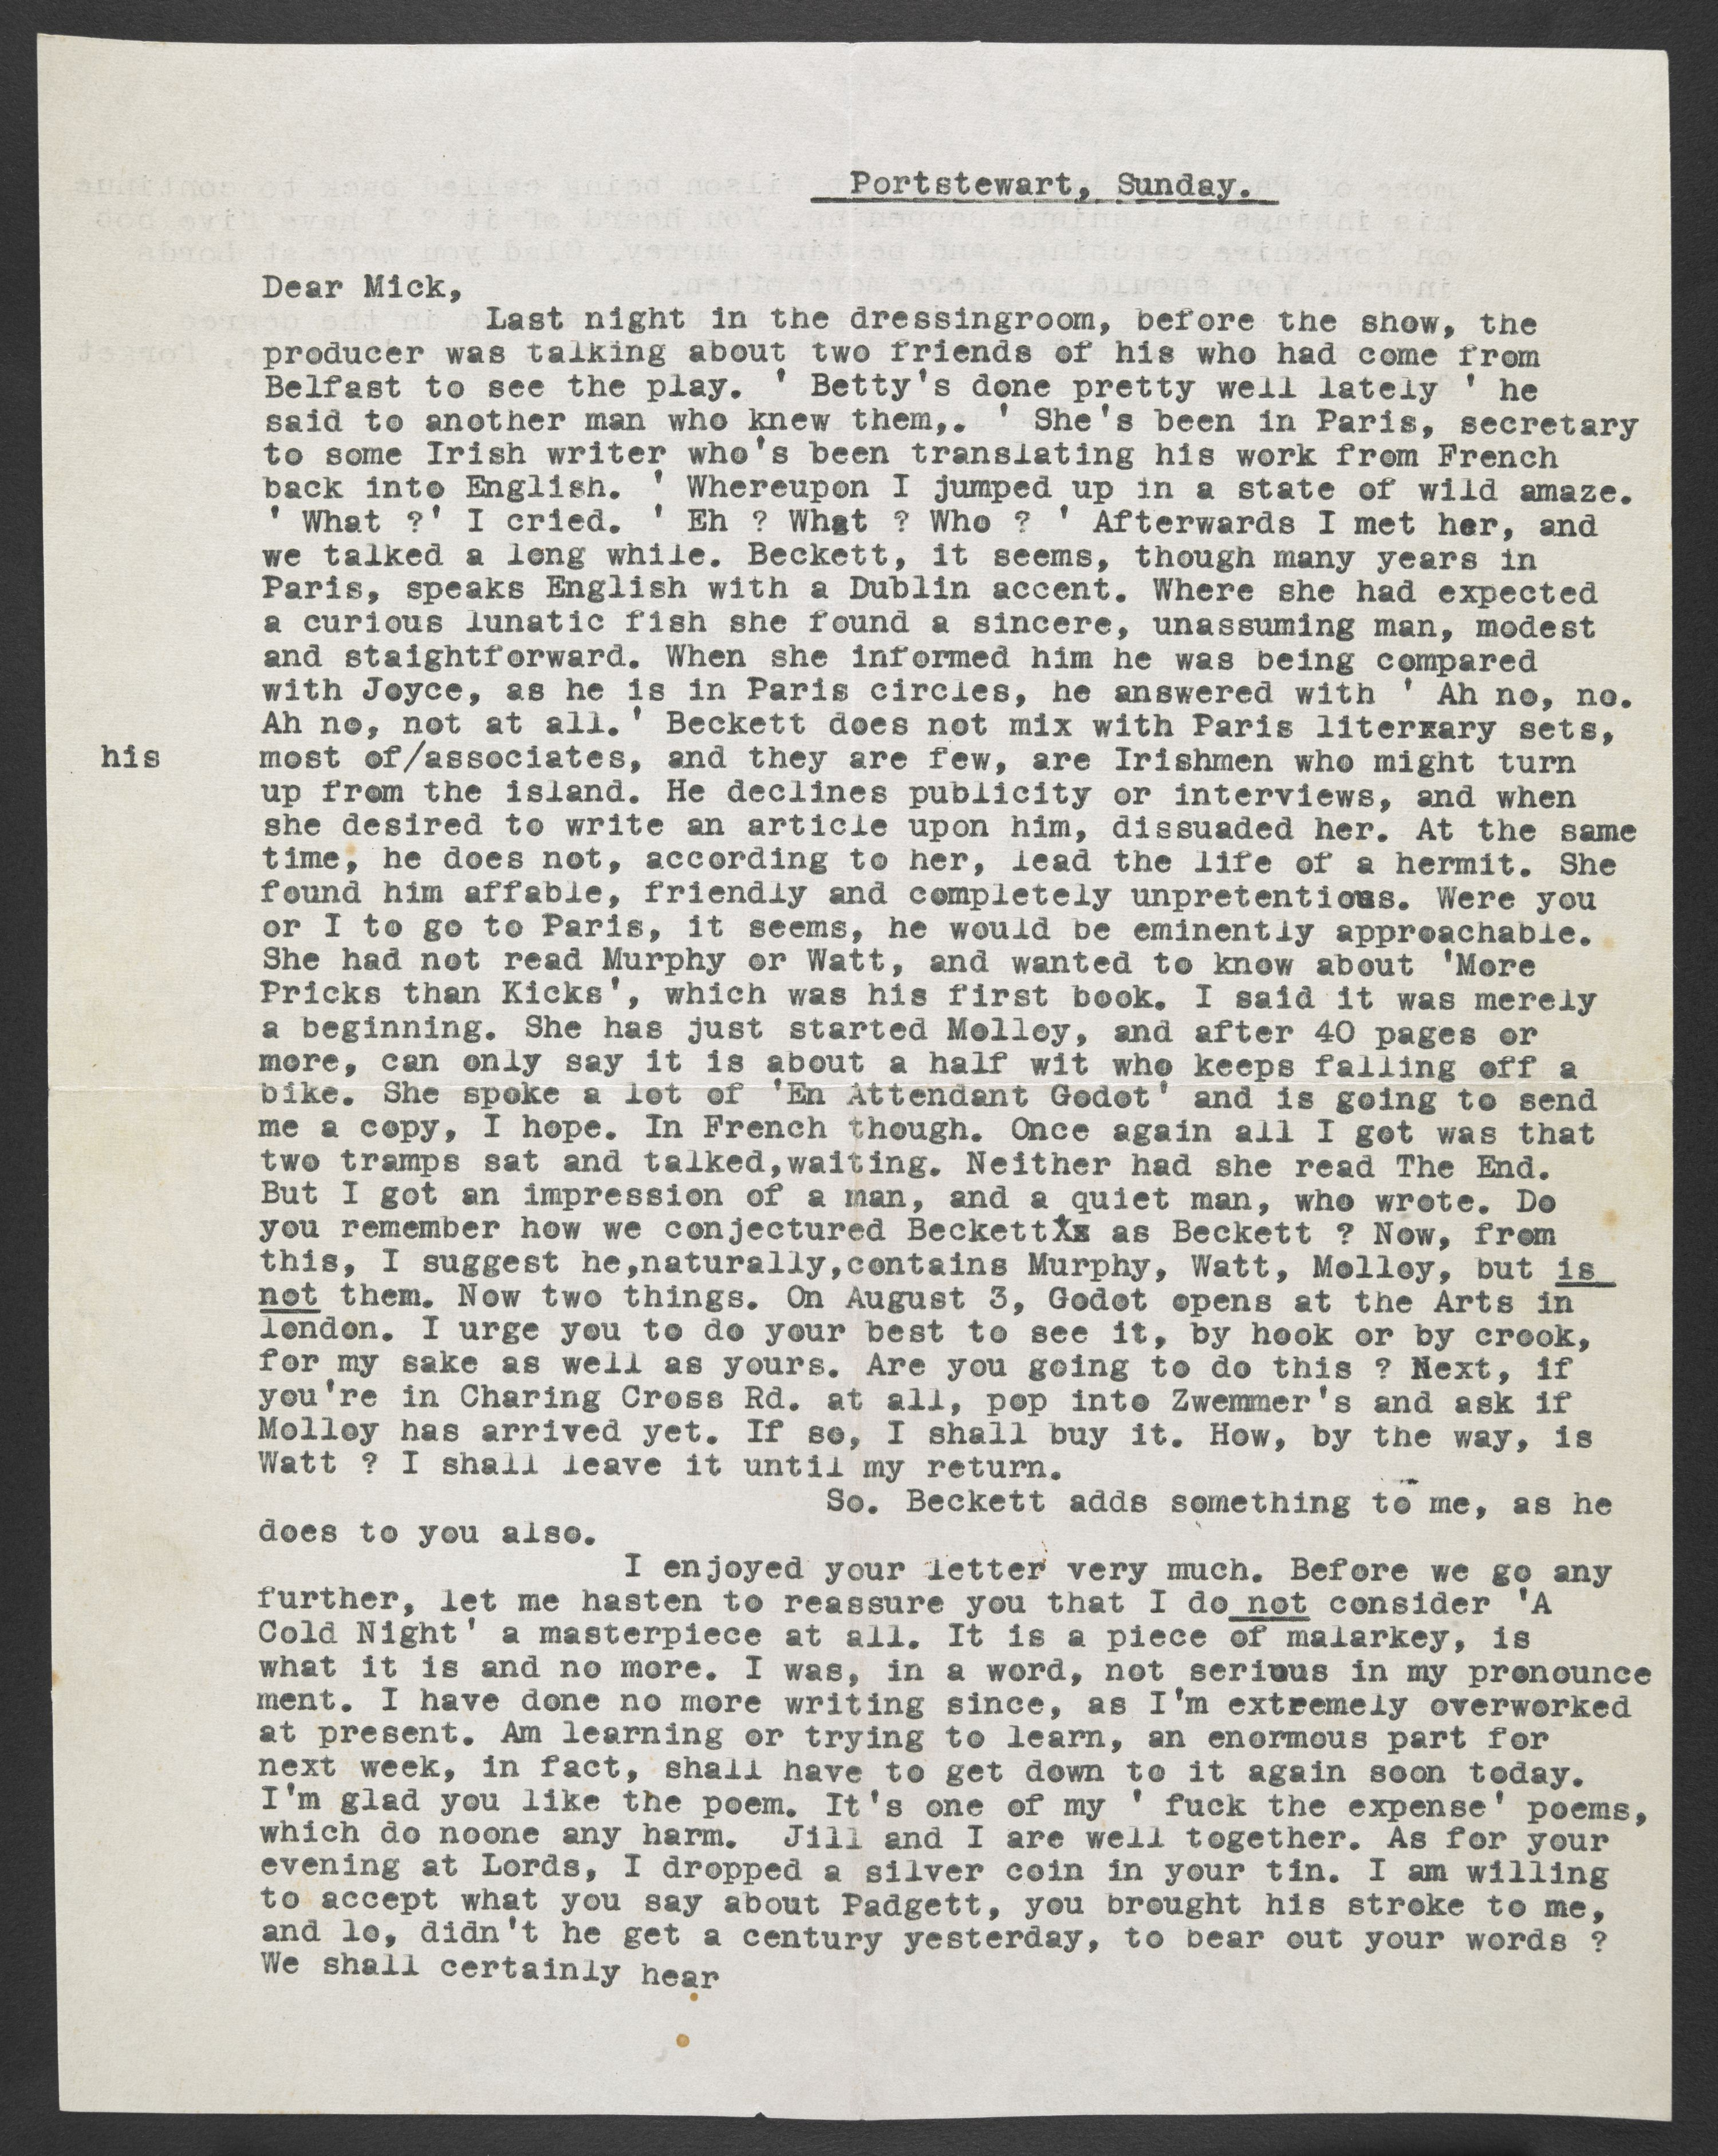 Letter from Harold Pinter to his friend in 1955 acquired by the British Library. Courtesy of the Estate of Harold Pinter